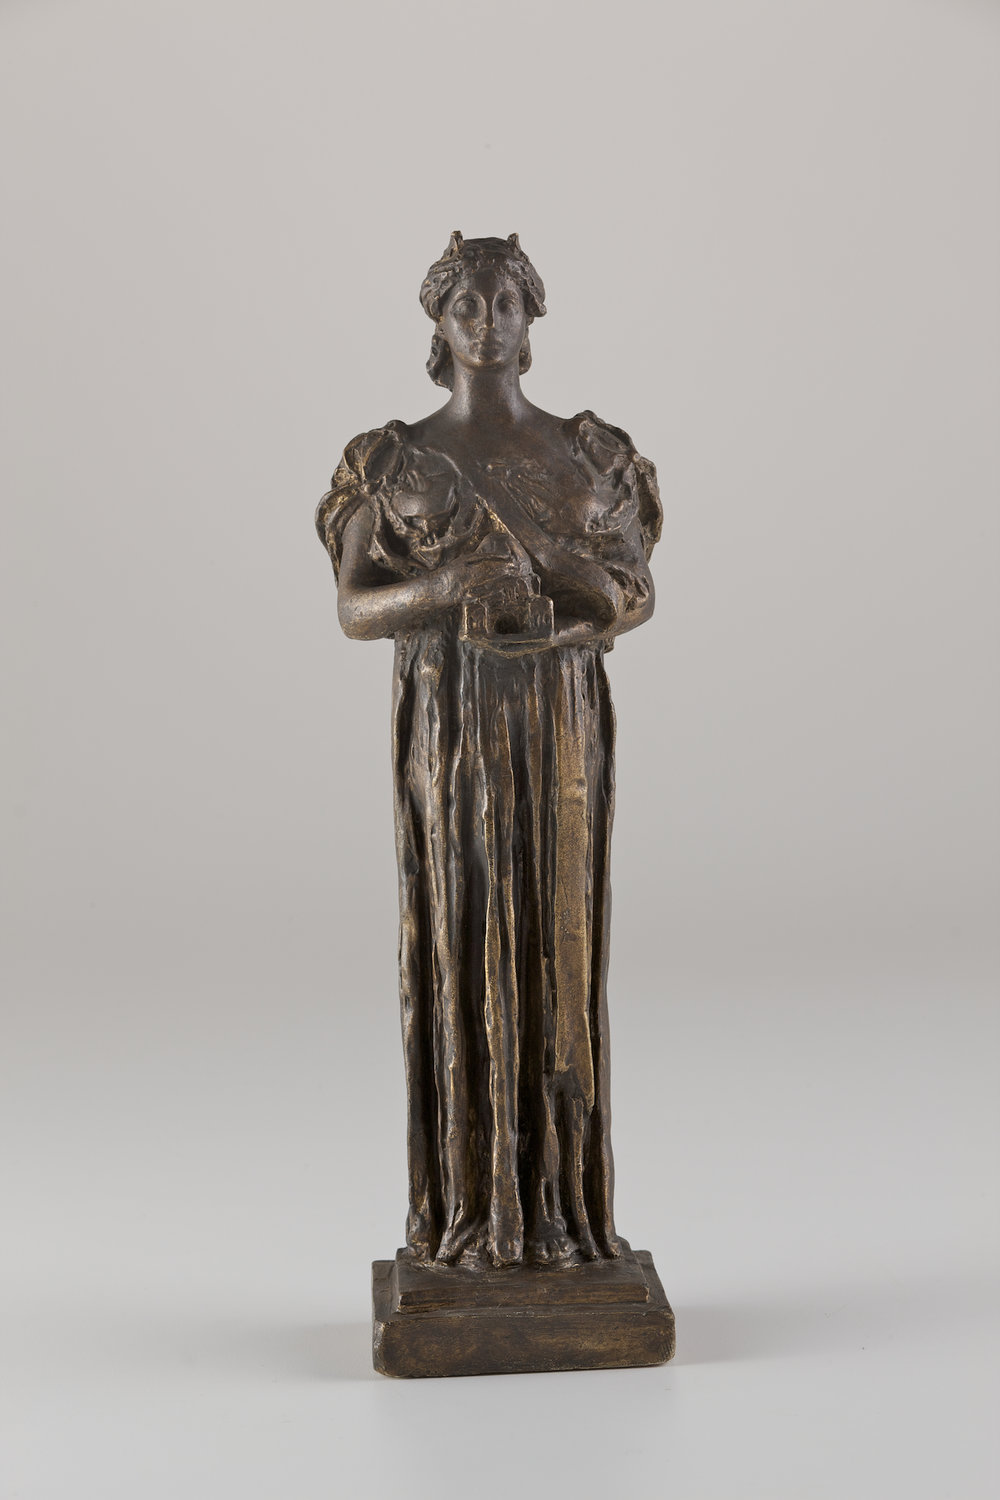 Daniel Chester French's bronze maquette of  Architecture , on view in the Permanent Collections Gallery